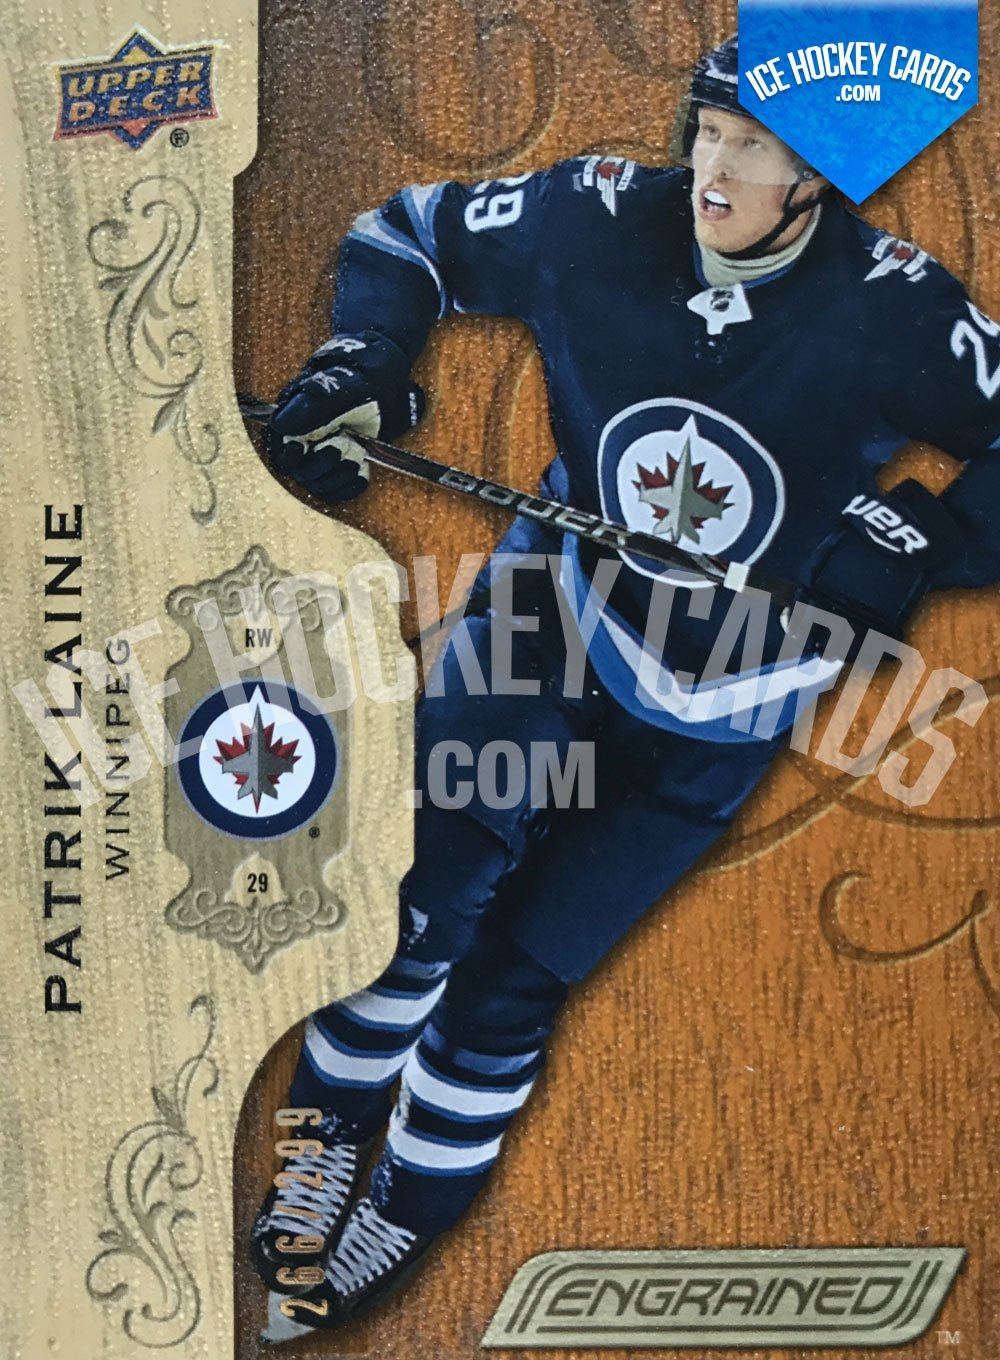 Upper Deck - Engrained 18-19 - Patrik Laine Base Card